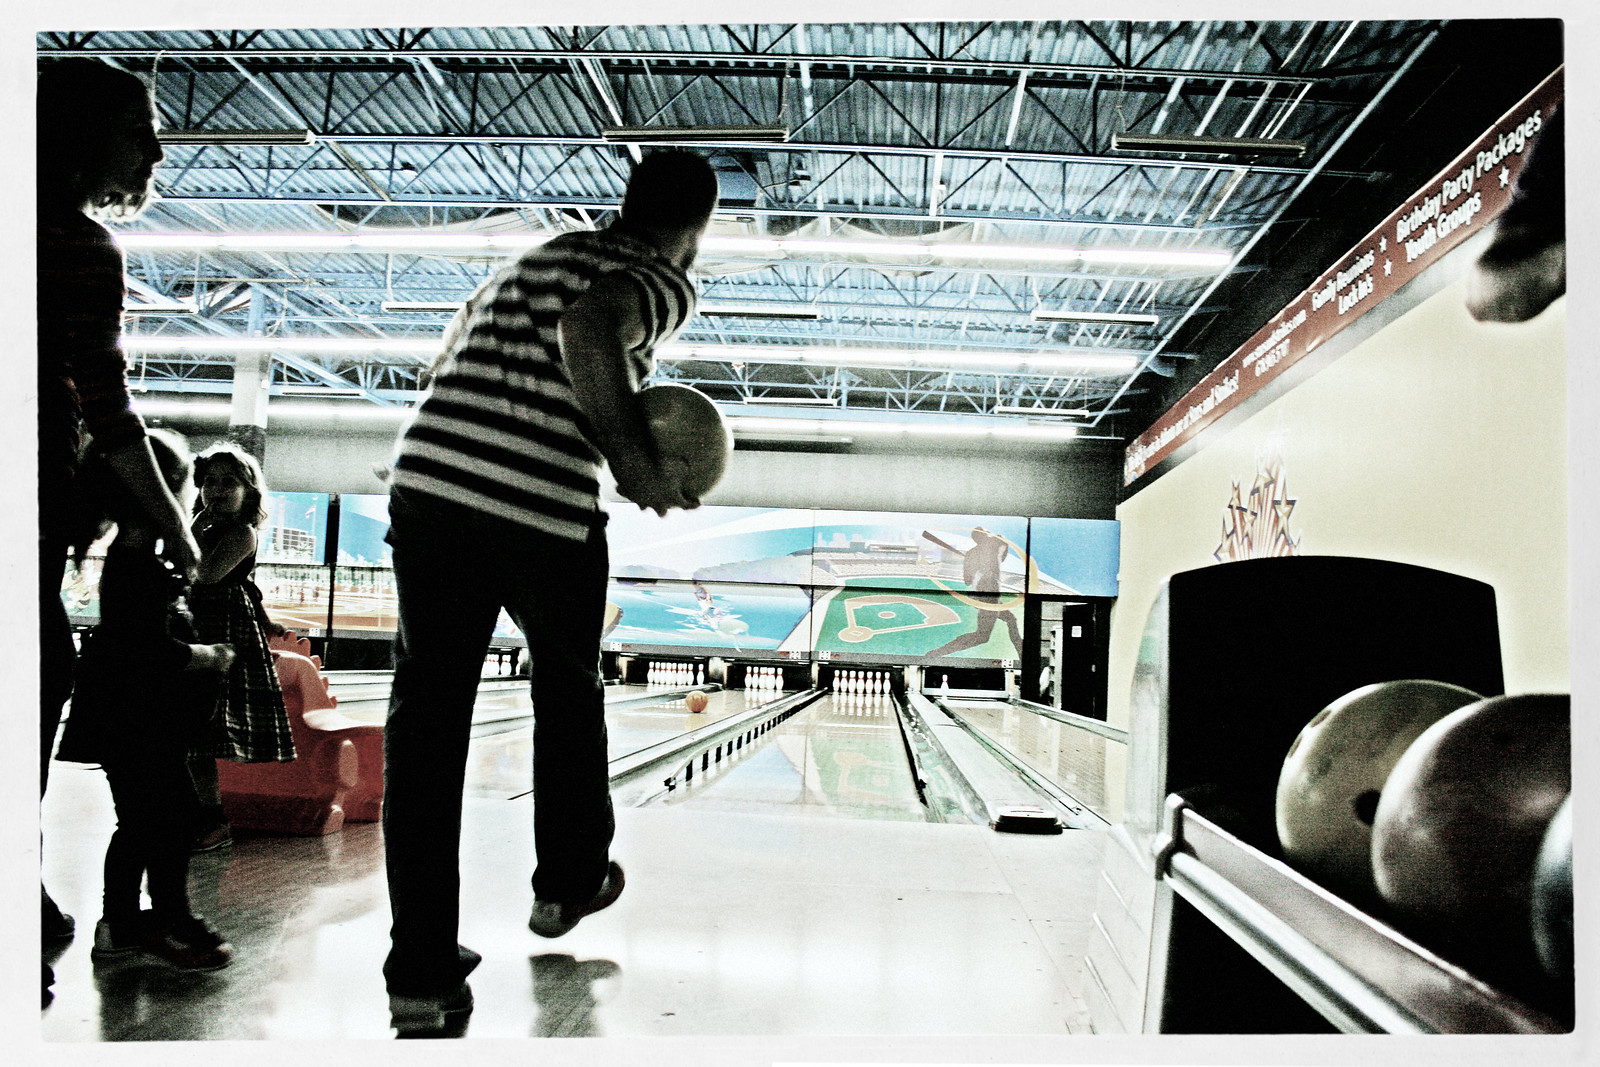 Bowler in Striped Shirt 1, Oct 2014